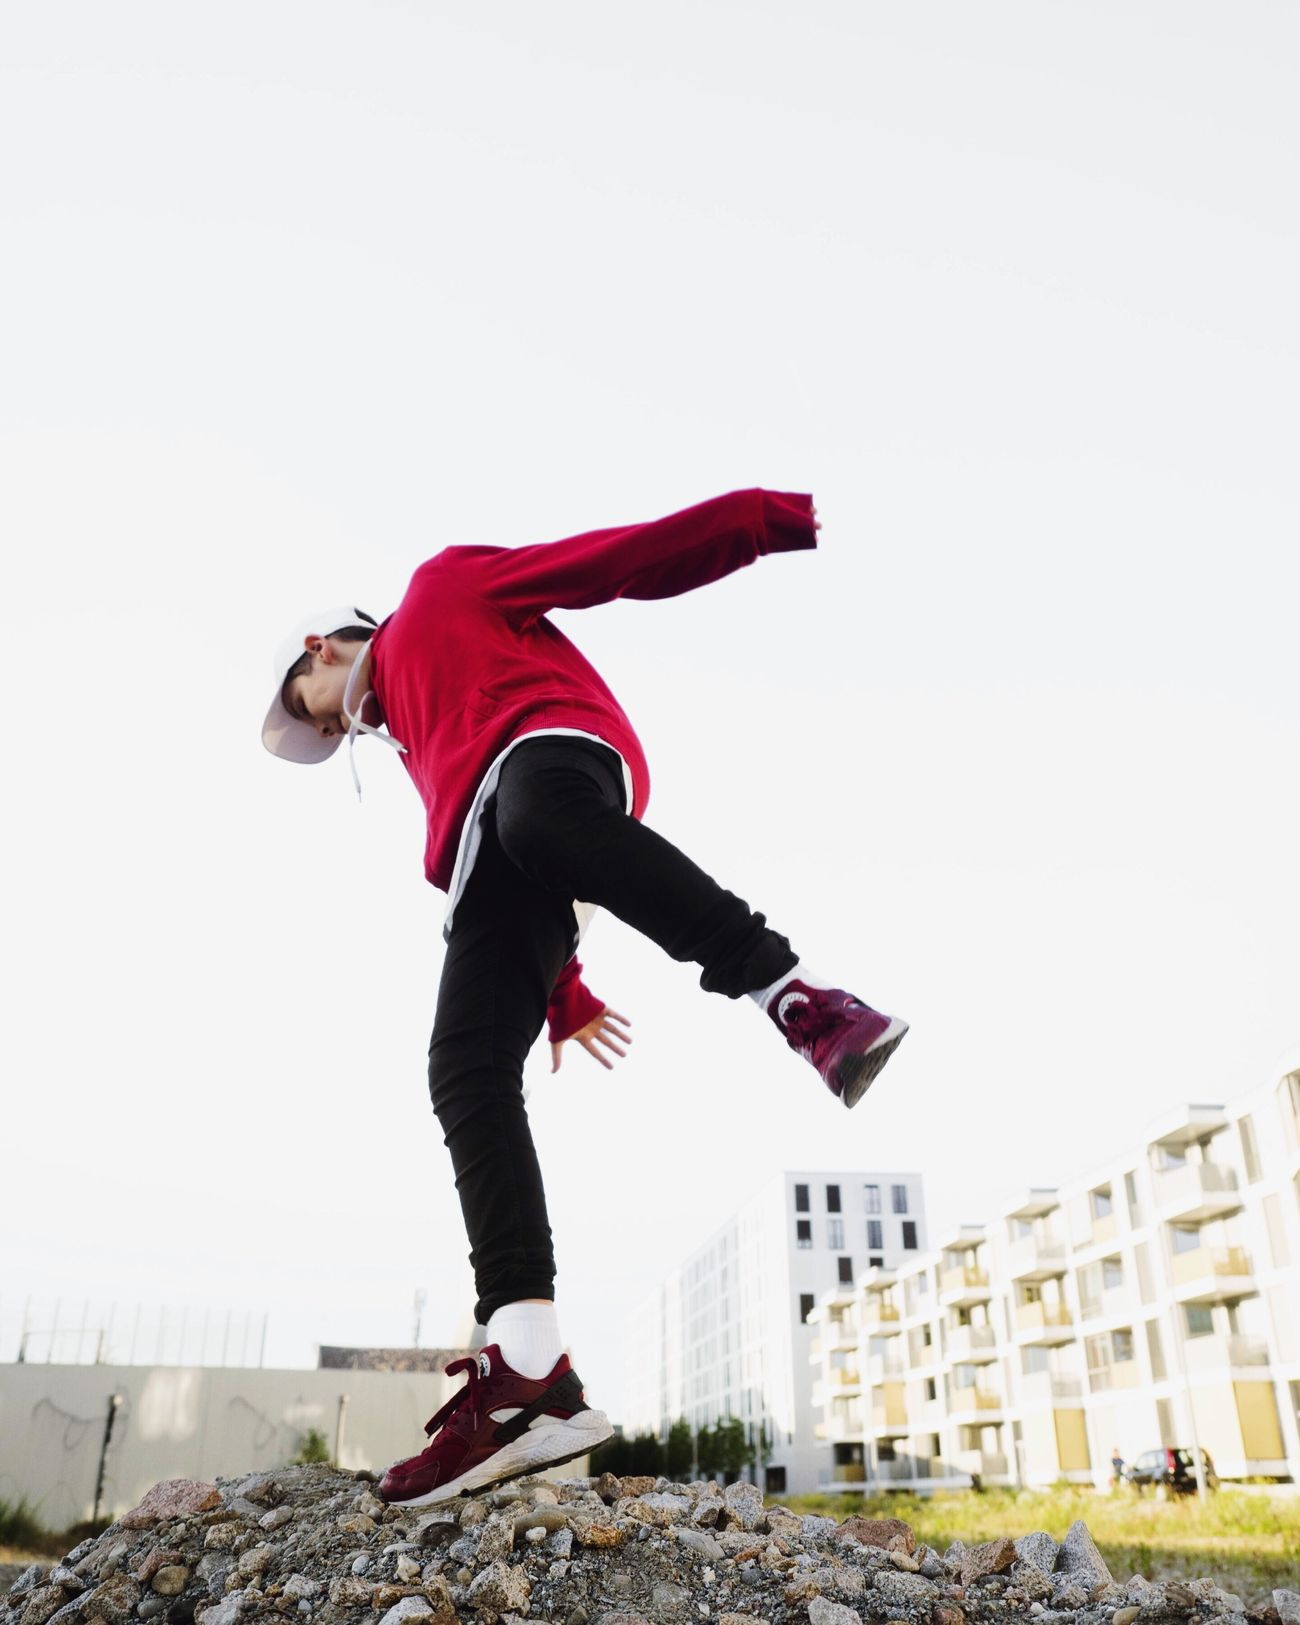 Full Length One Person Red Motion People Day Outdoors Low Angle View Adults Only Only Men Jumping Teenager Sports Clothing Young Adult Athlete Sky Urbanphotography Out Of The Box